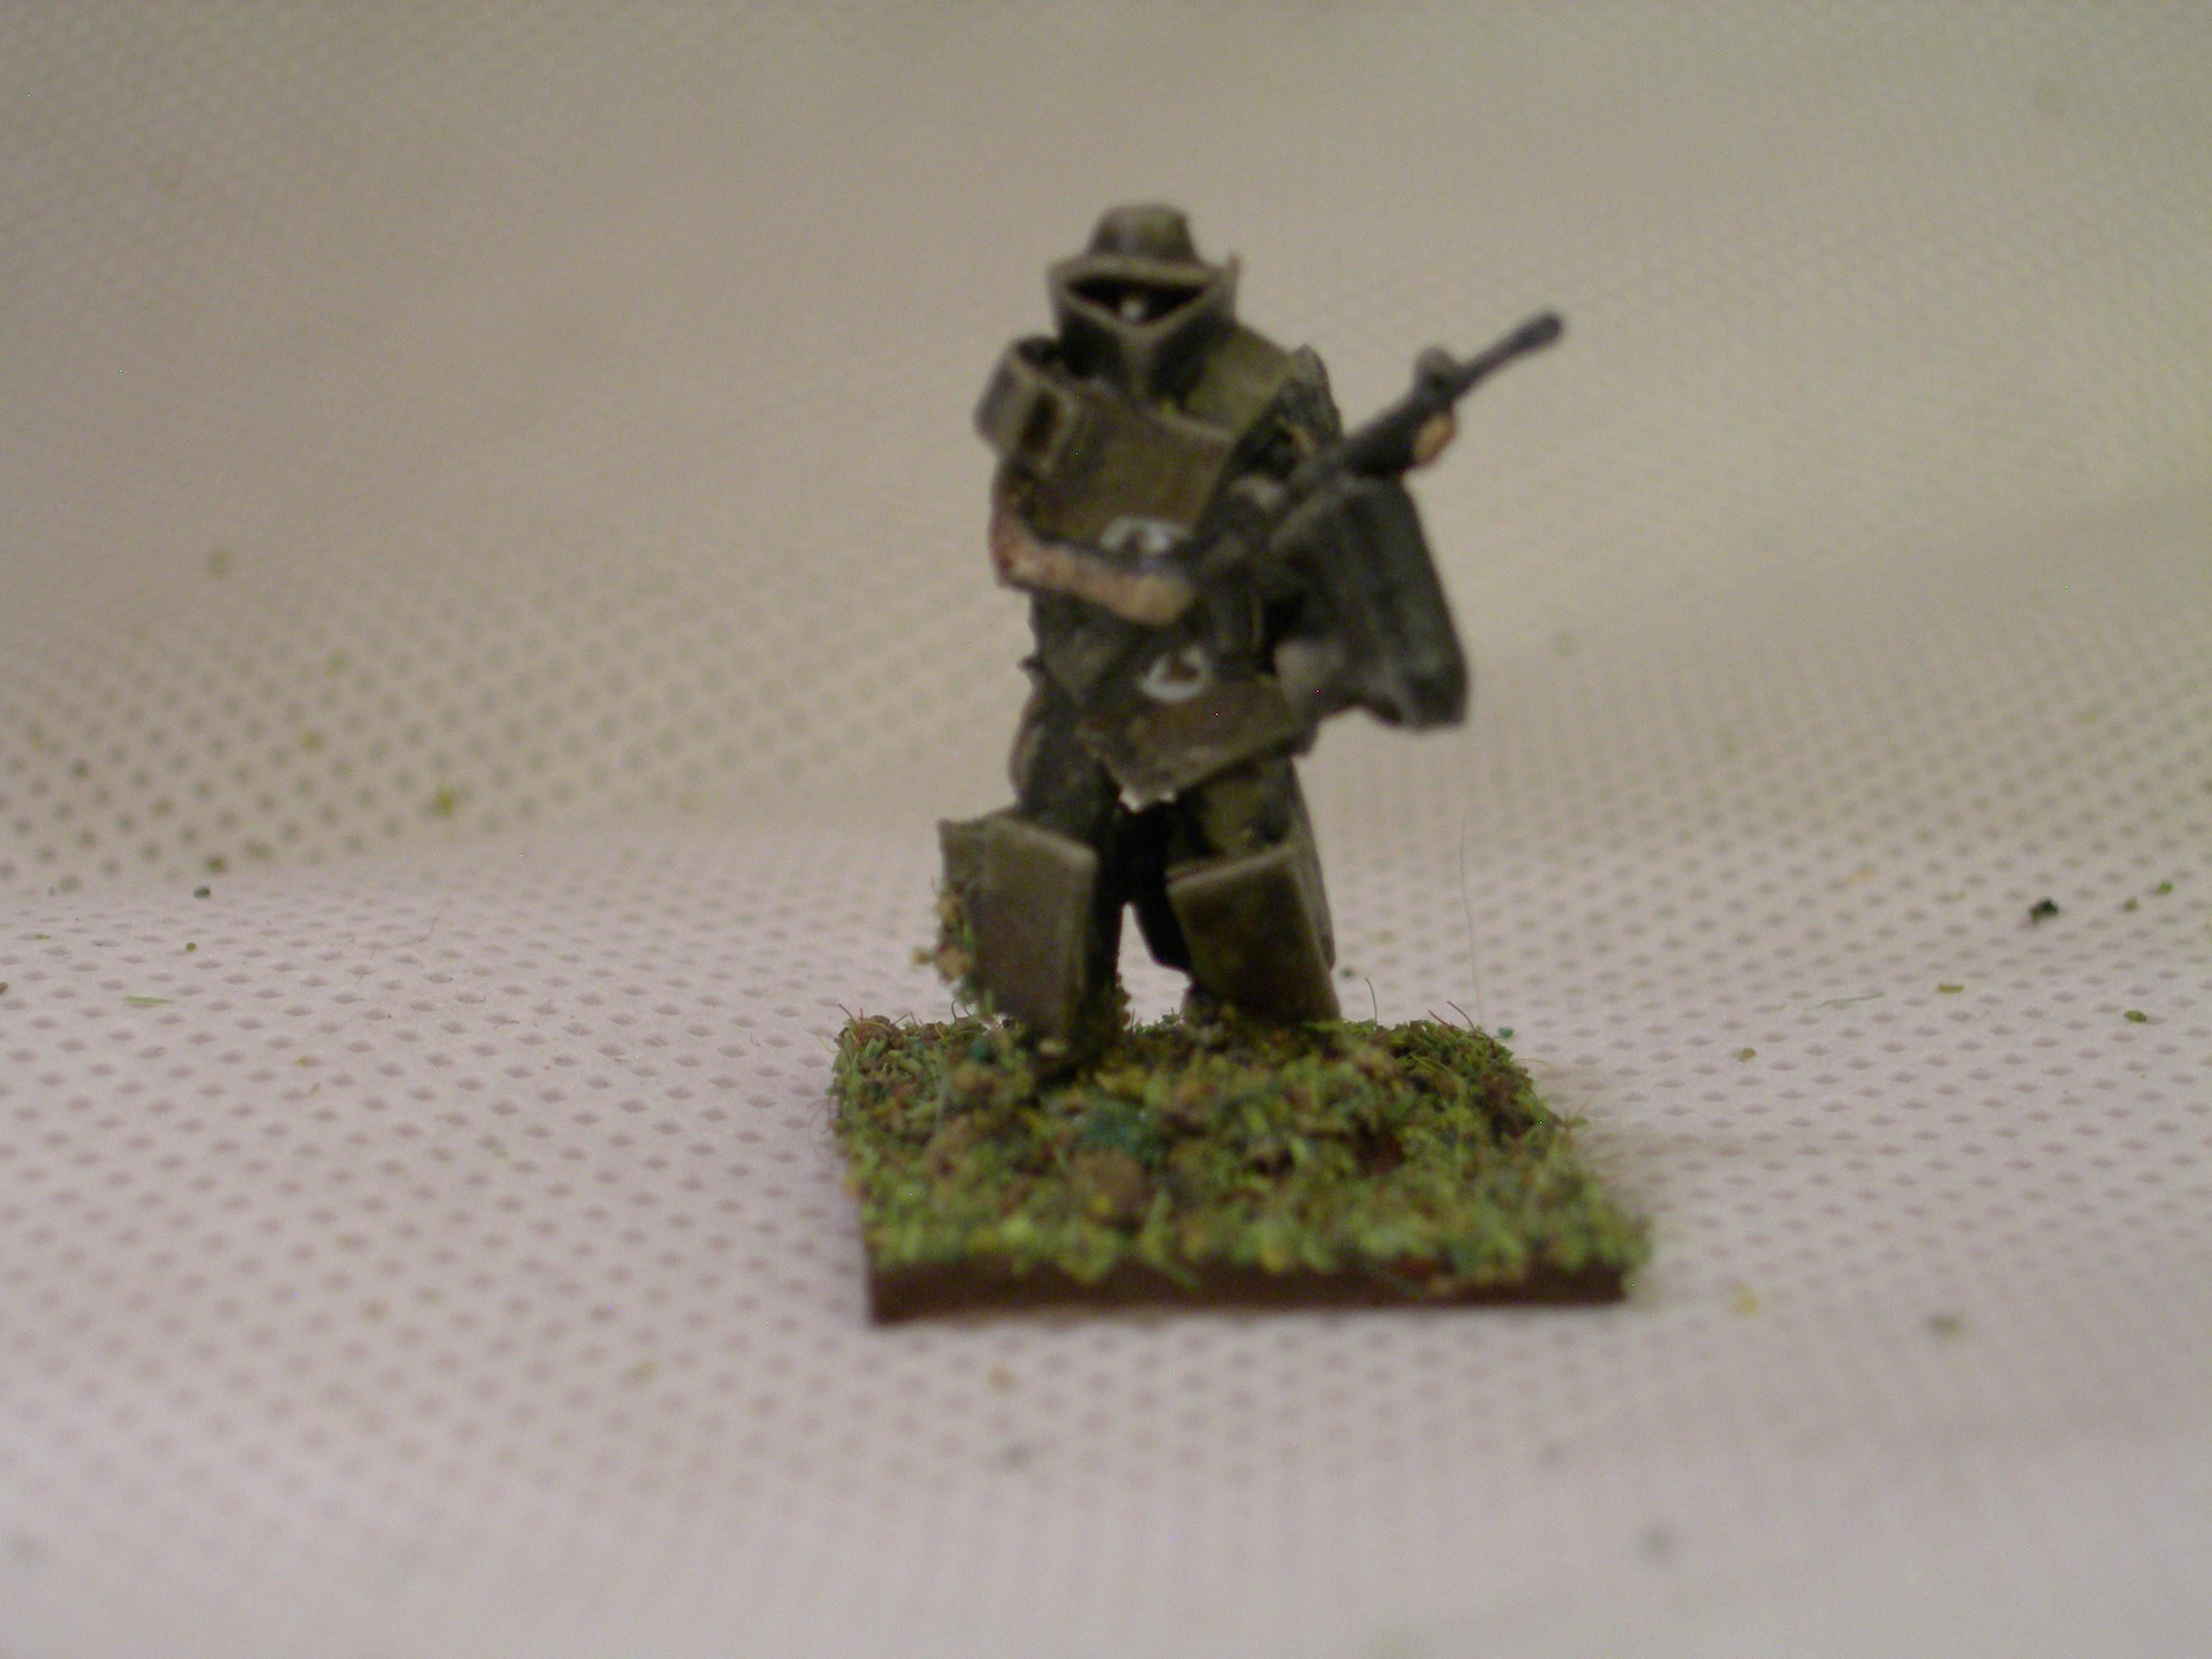 Delta Force sergeant with flamethrower